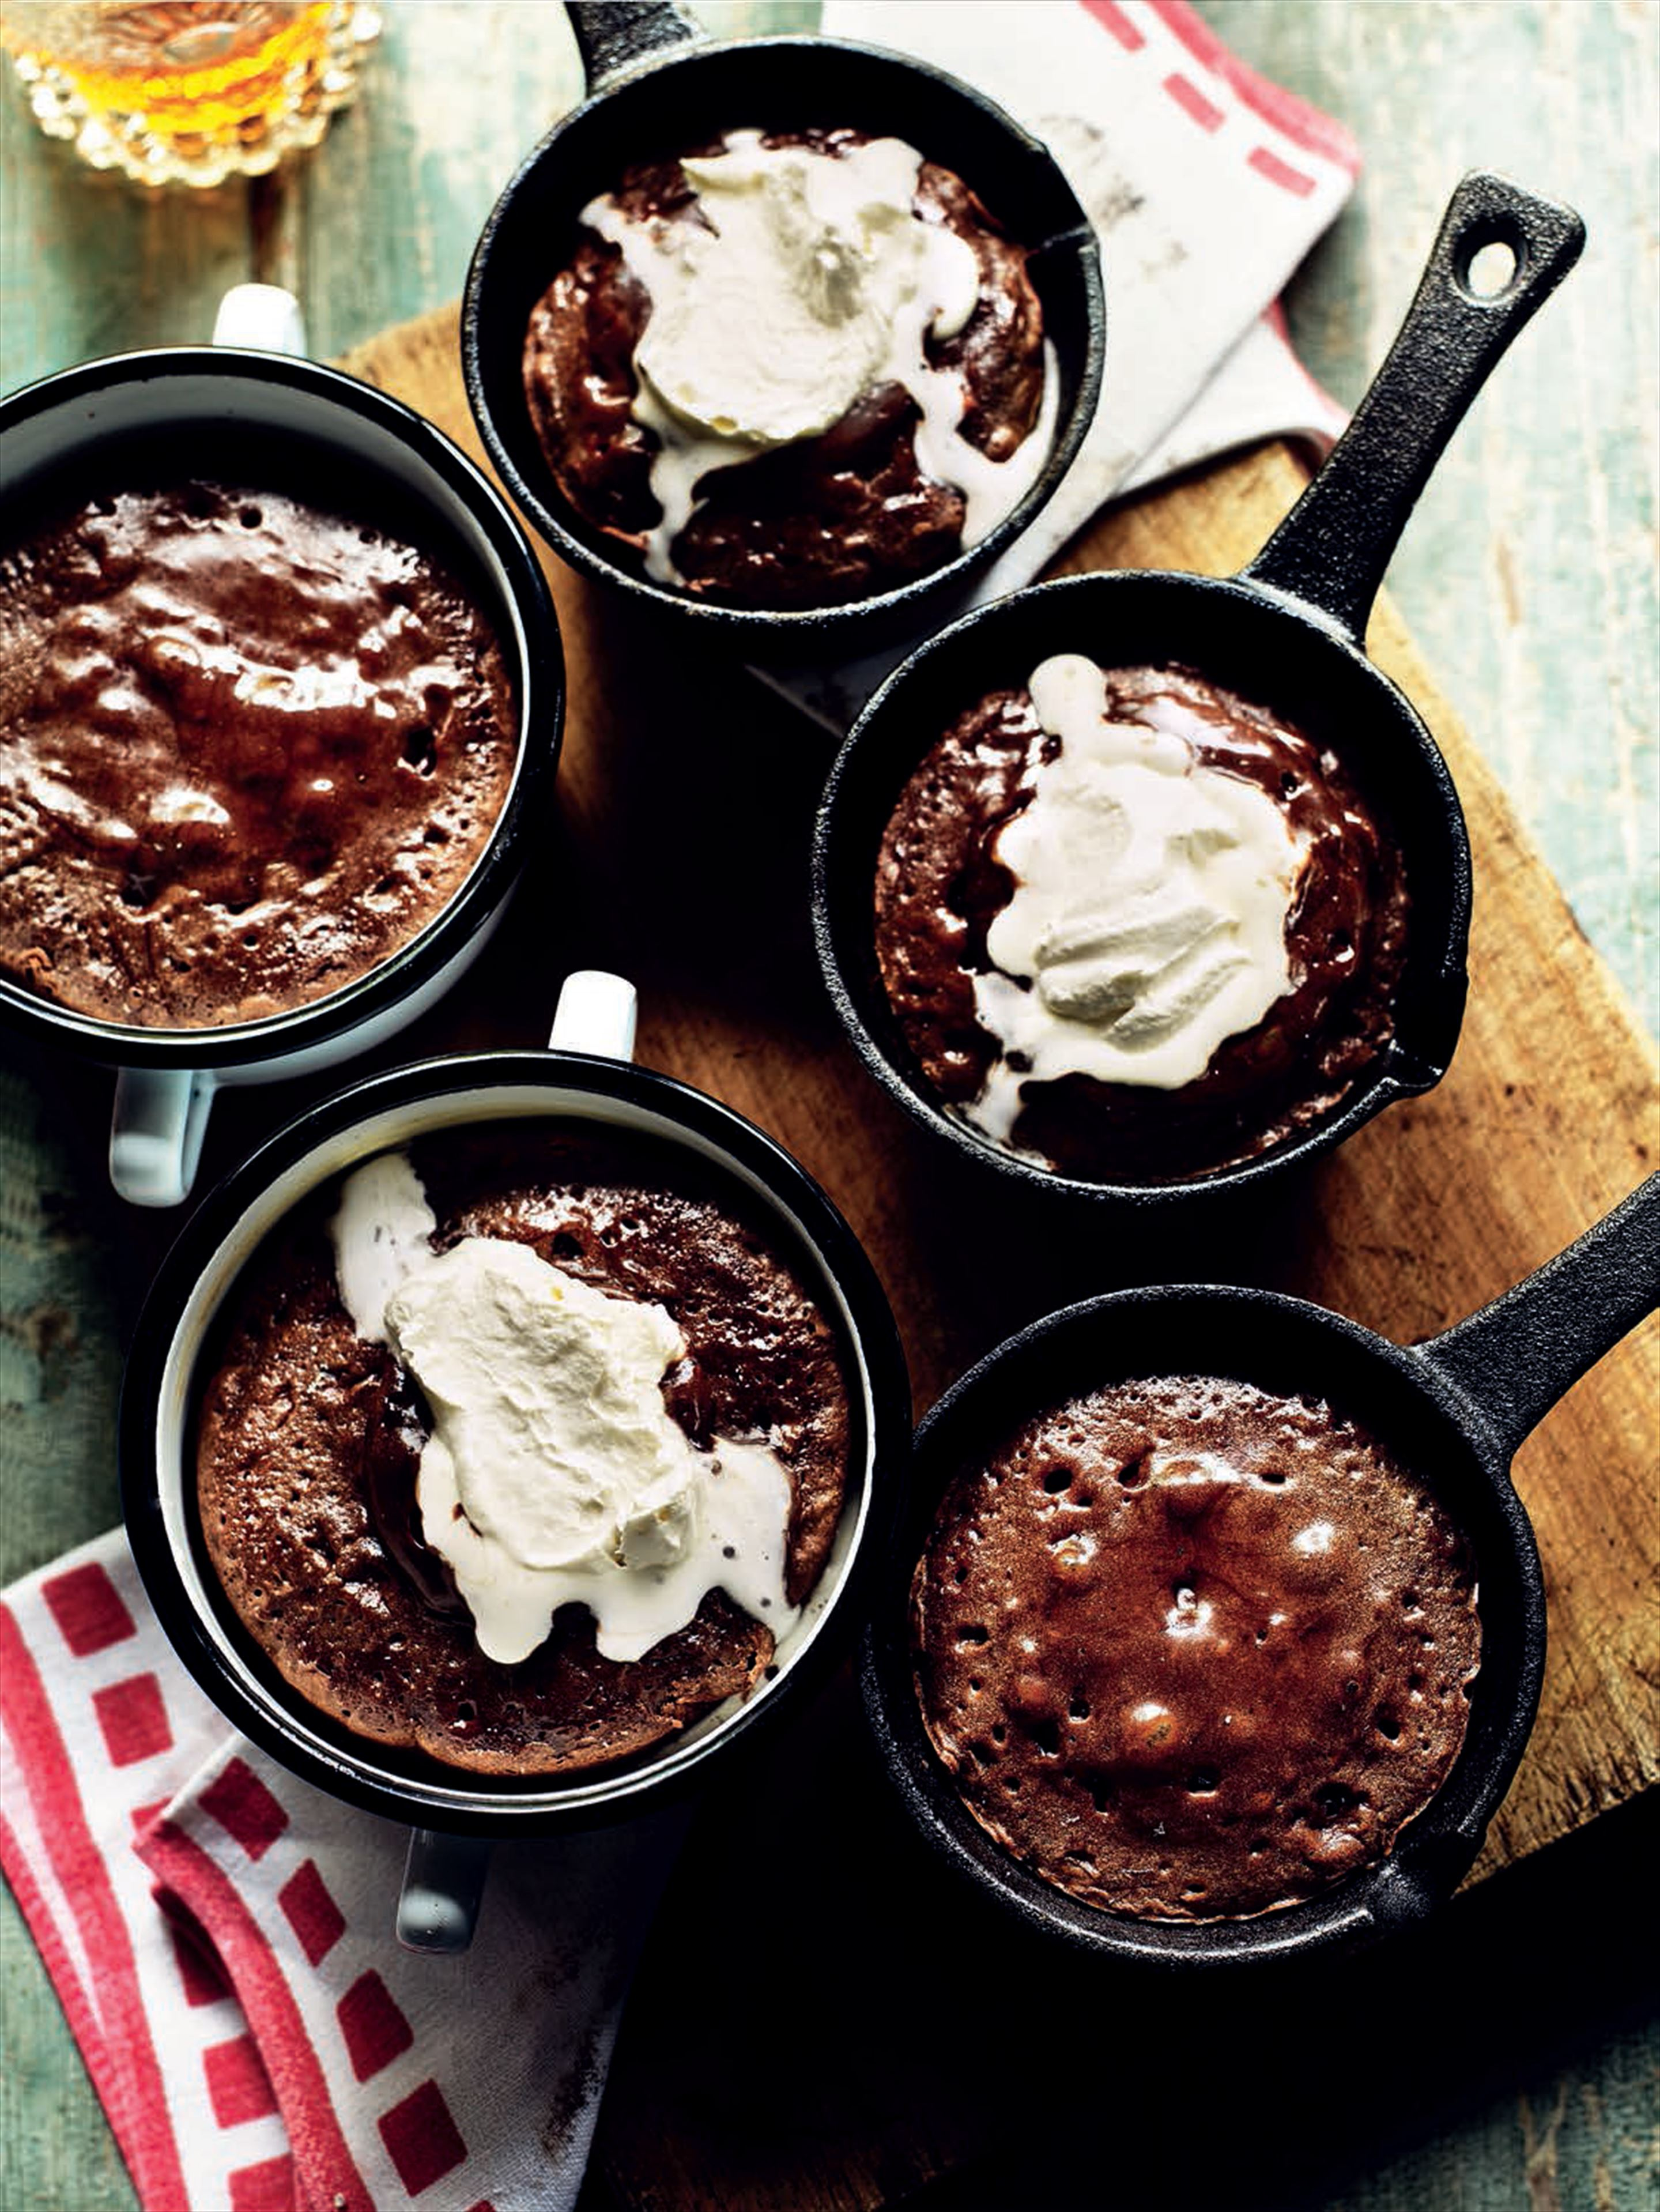 Smoky bitter-chocolate puddings with melting whipped cream